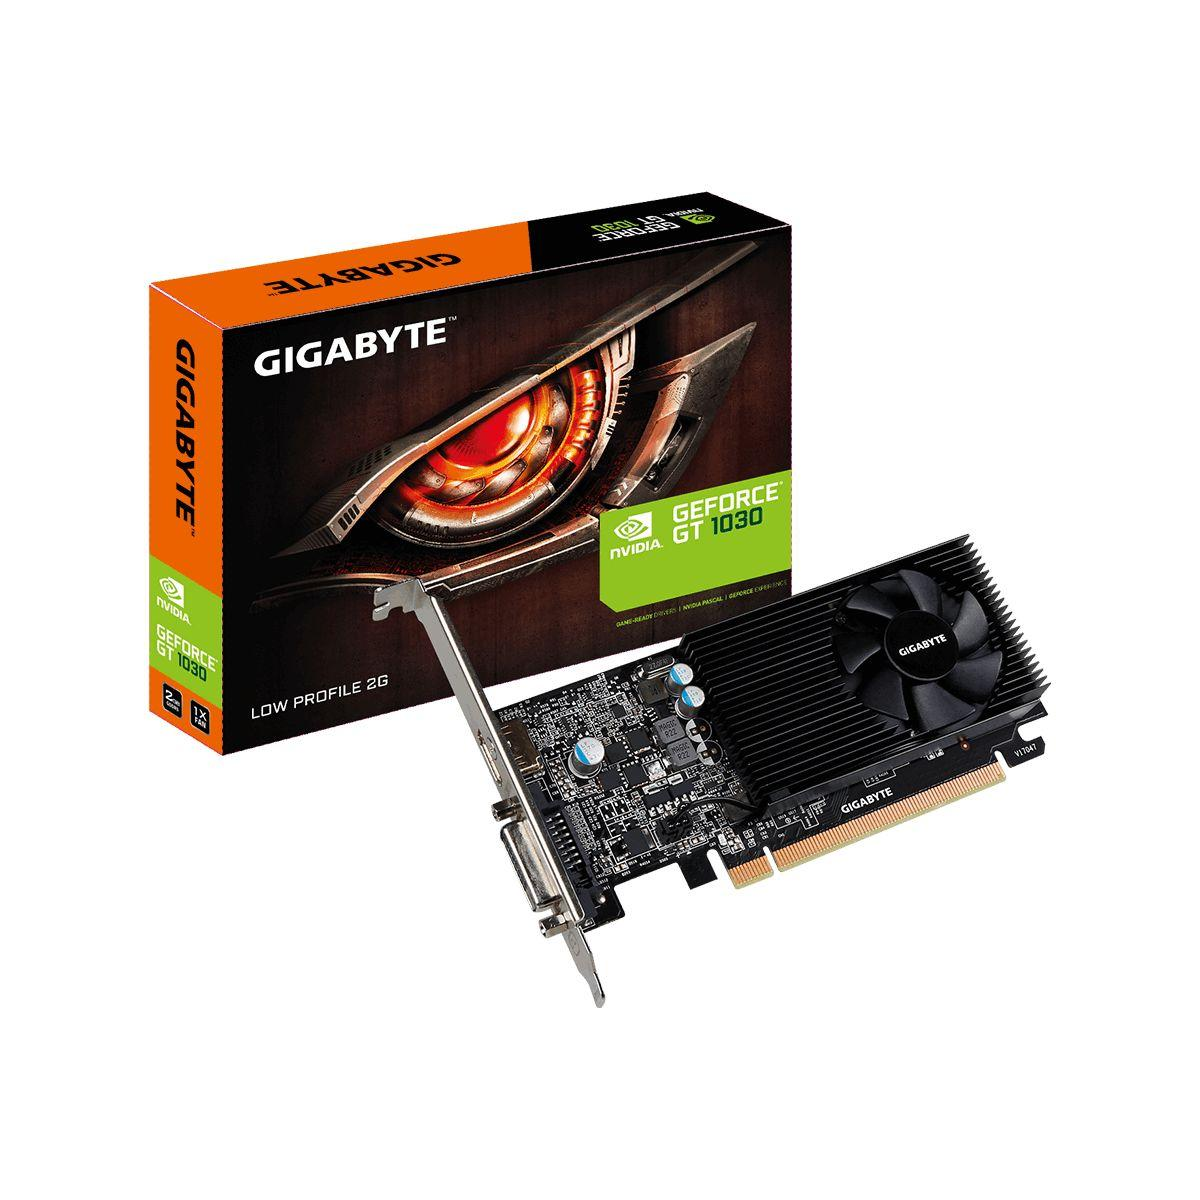 Carte graphique nvidia gigabyte geforce gt 1030 low profile 2g...